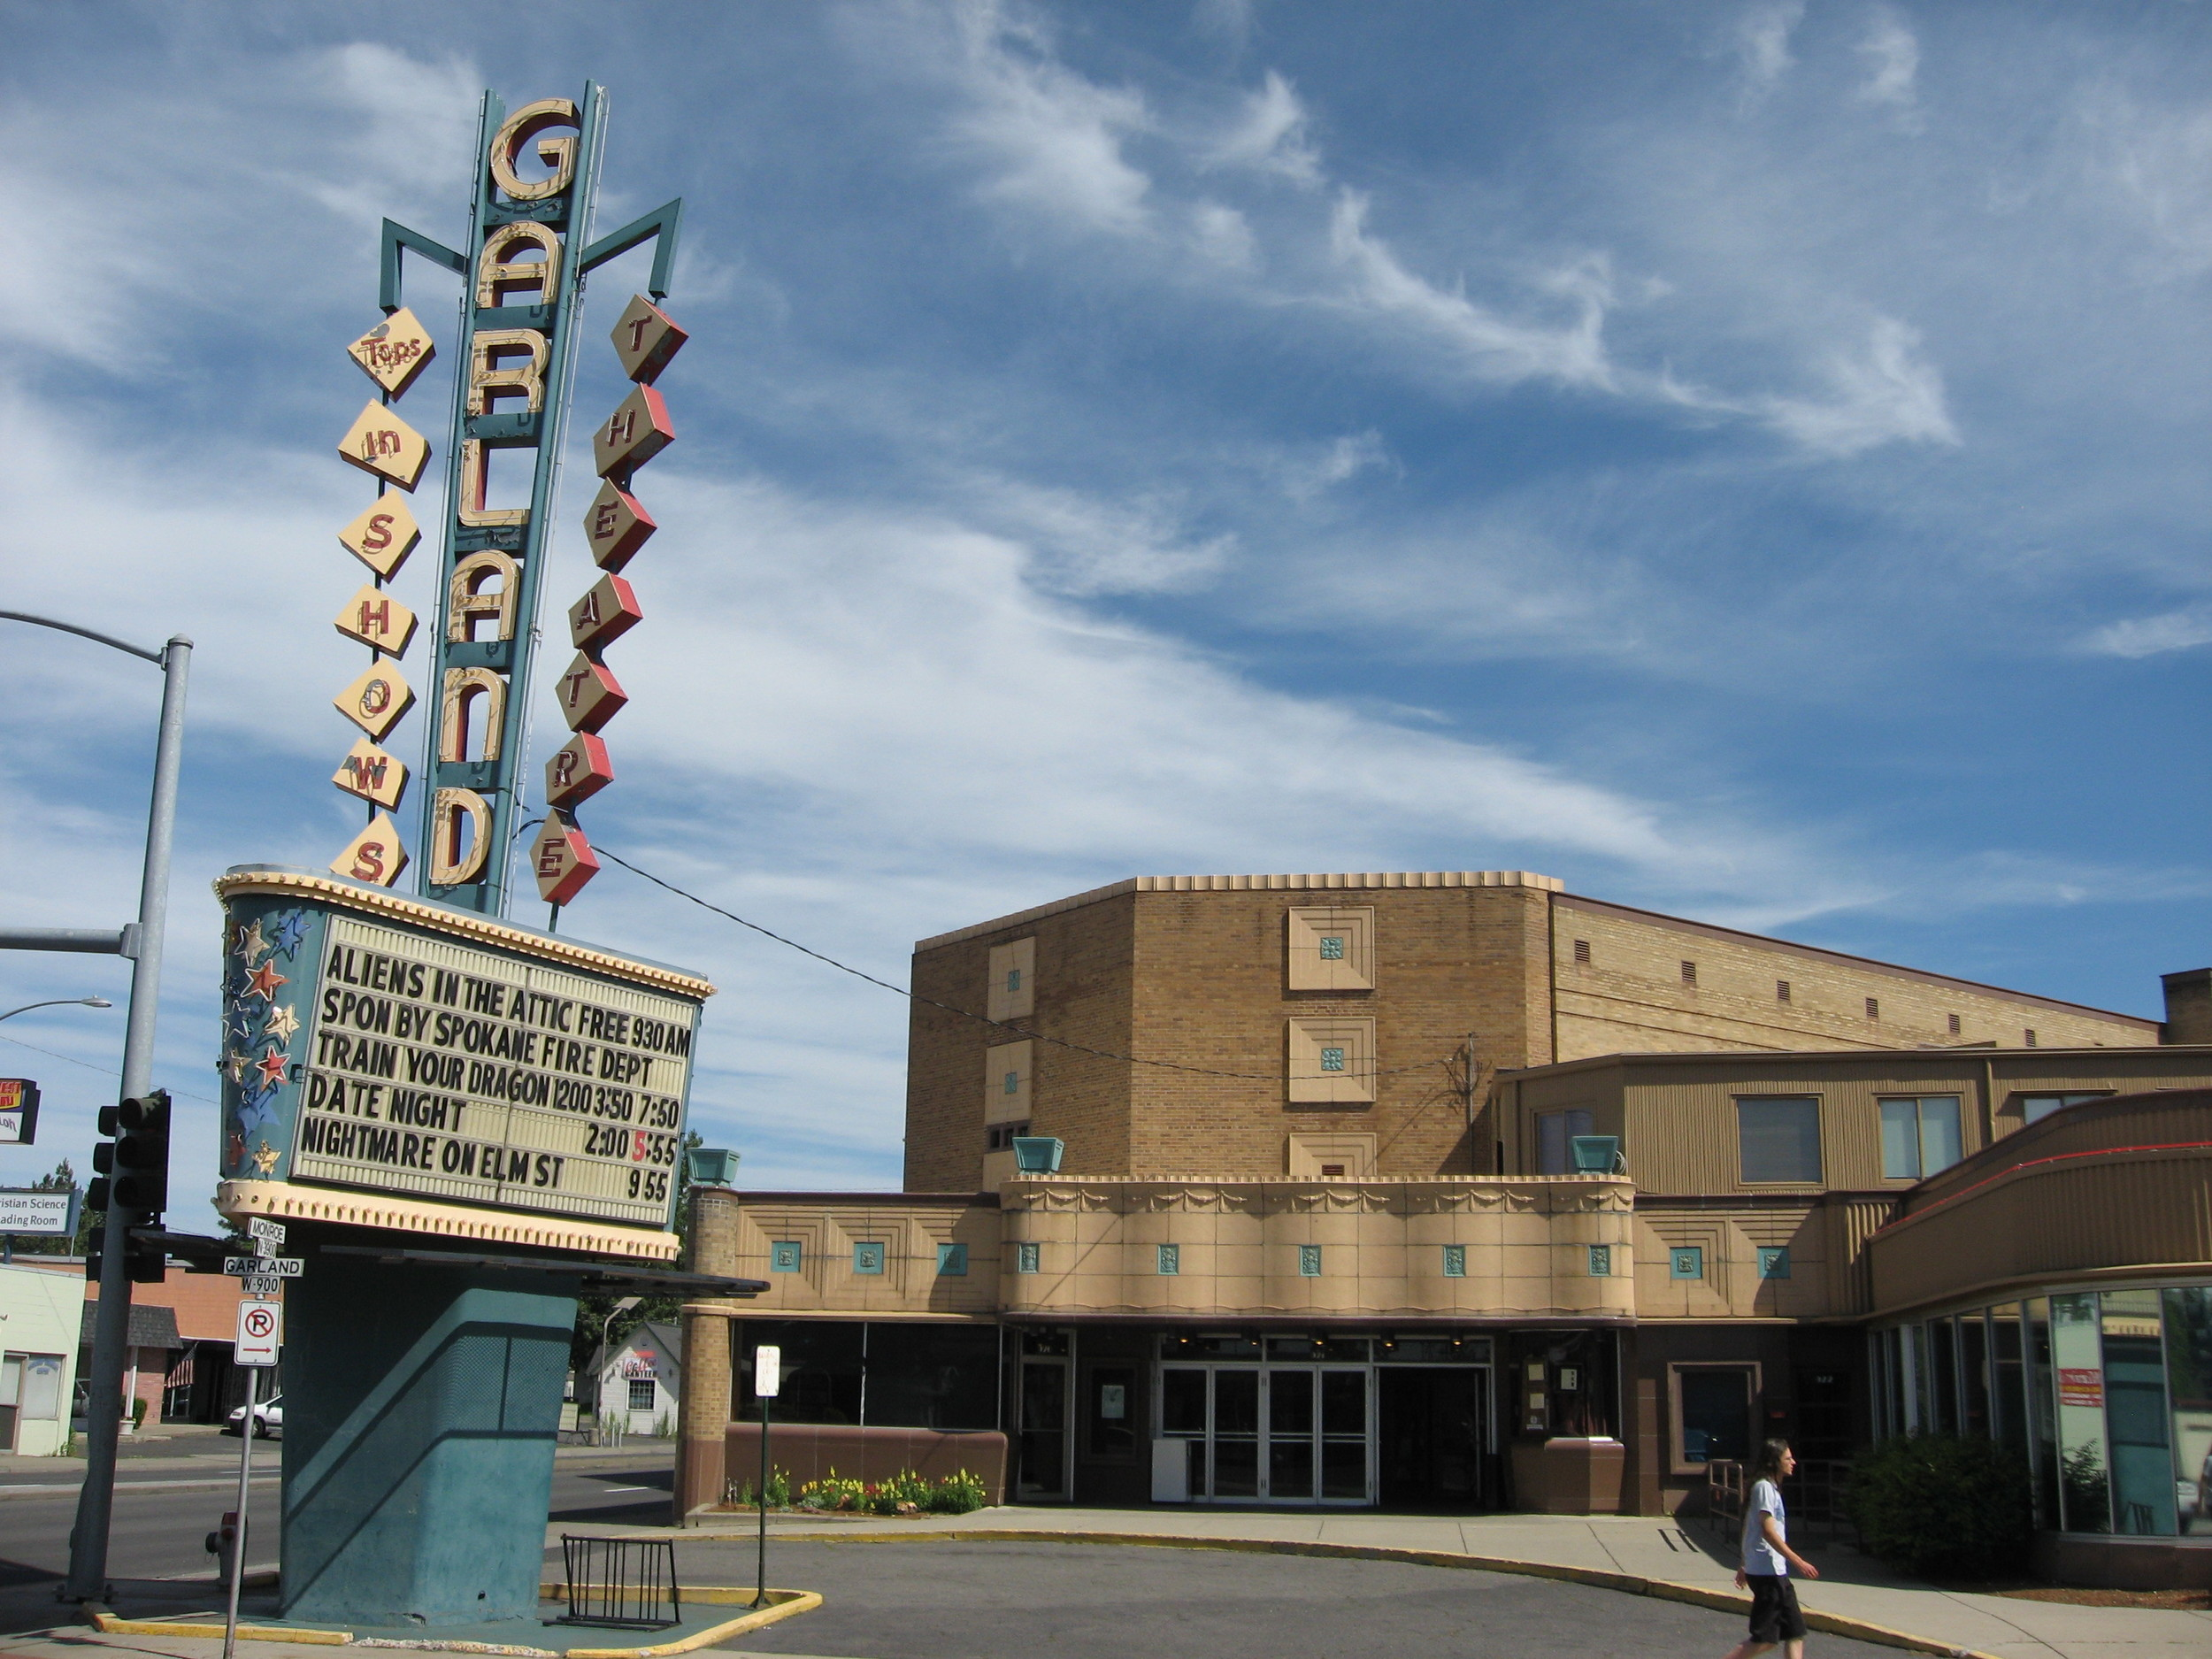 The art deco Garland Theatre is the anchor for this charming arts district.